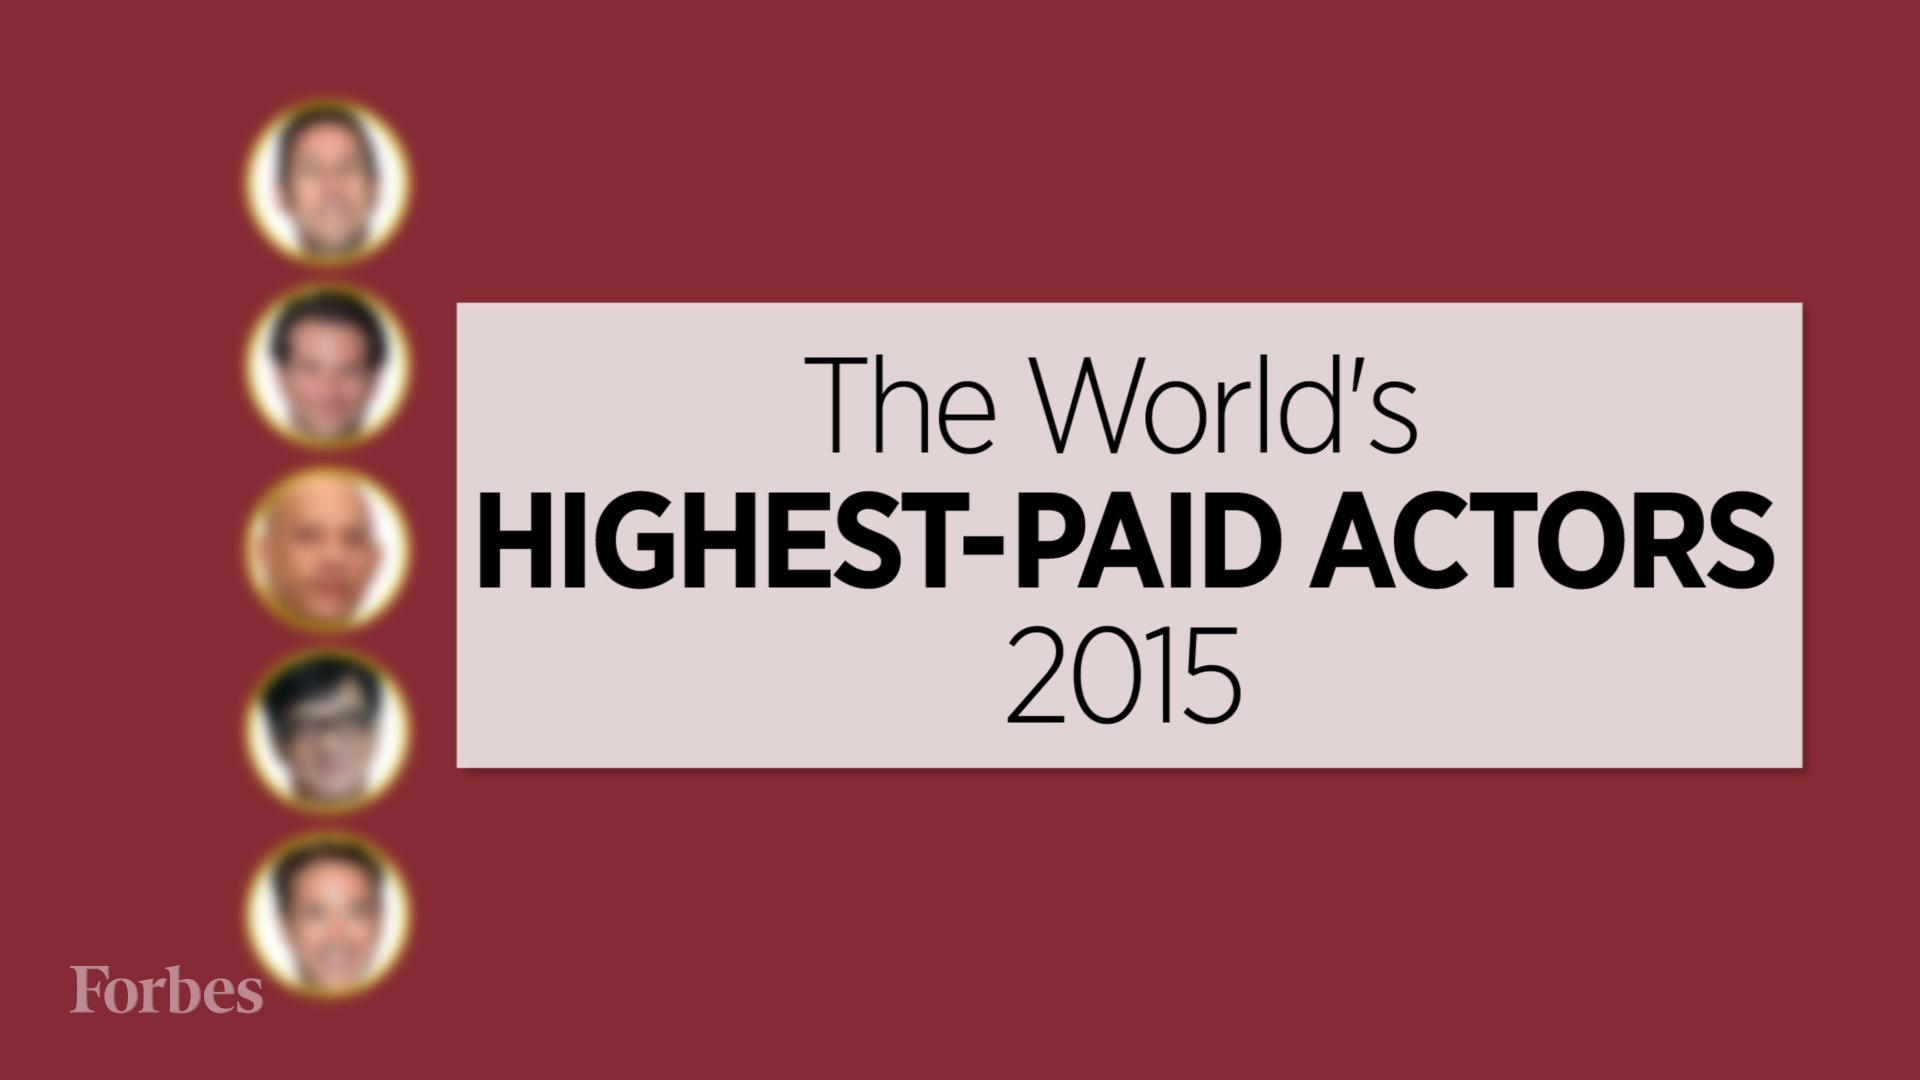 The World's Highest-Paid Actors 2015